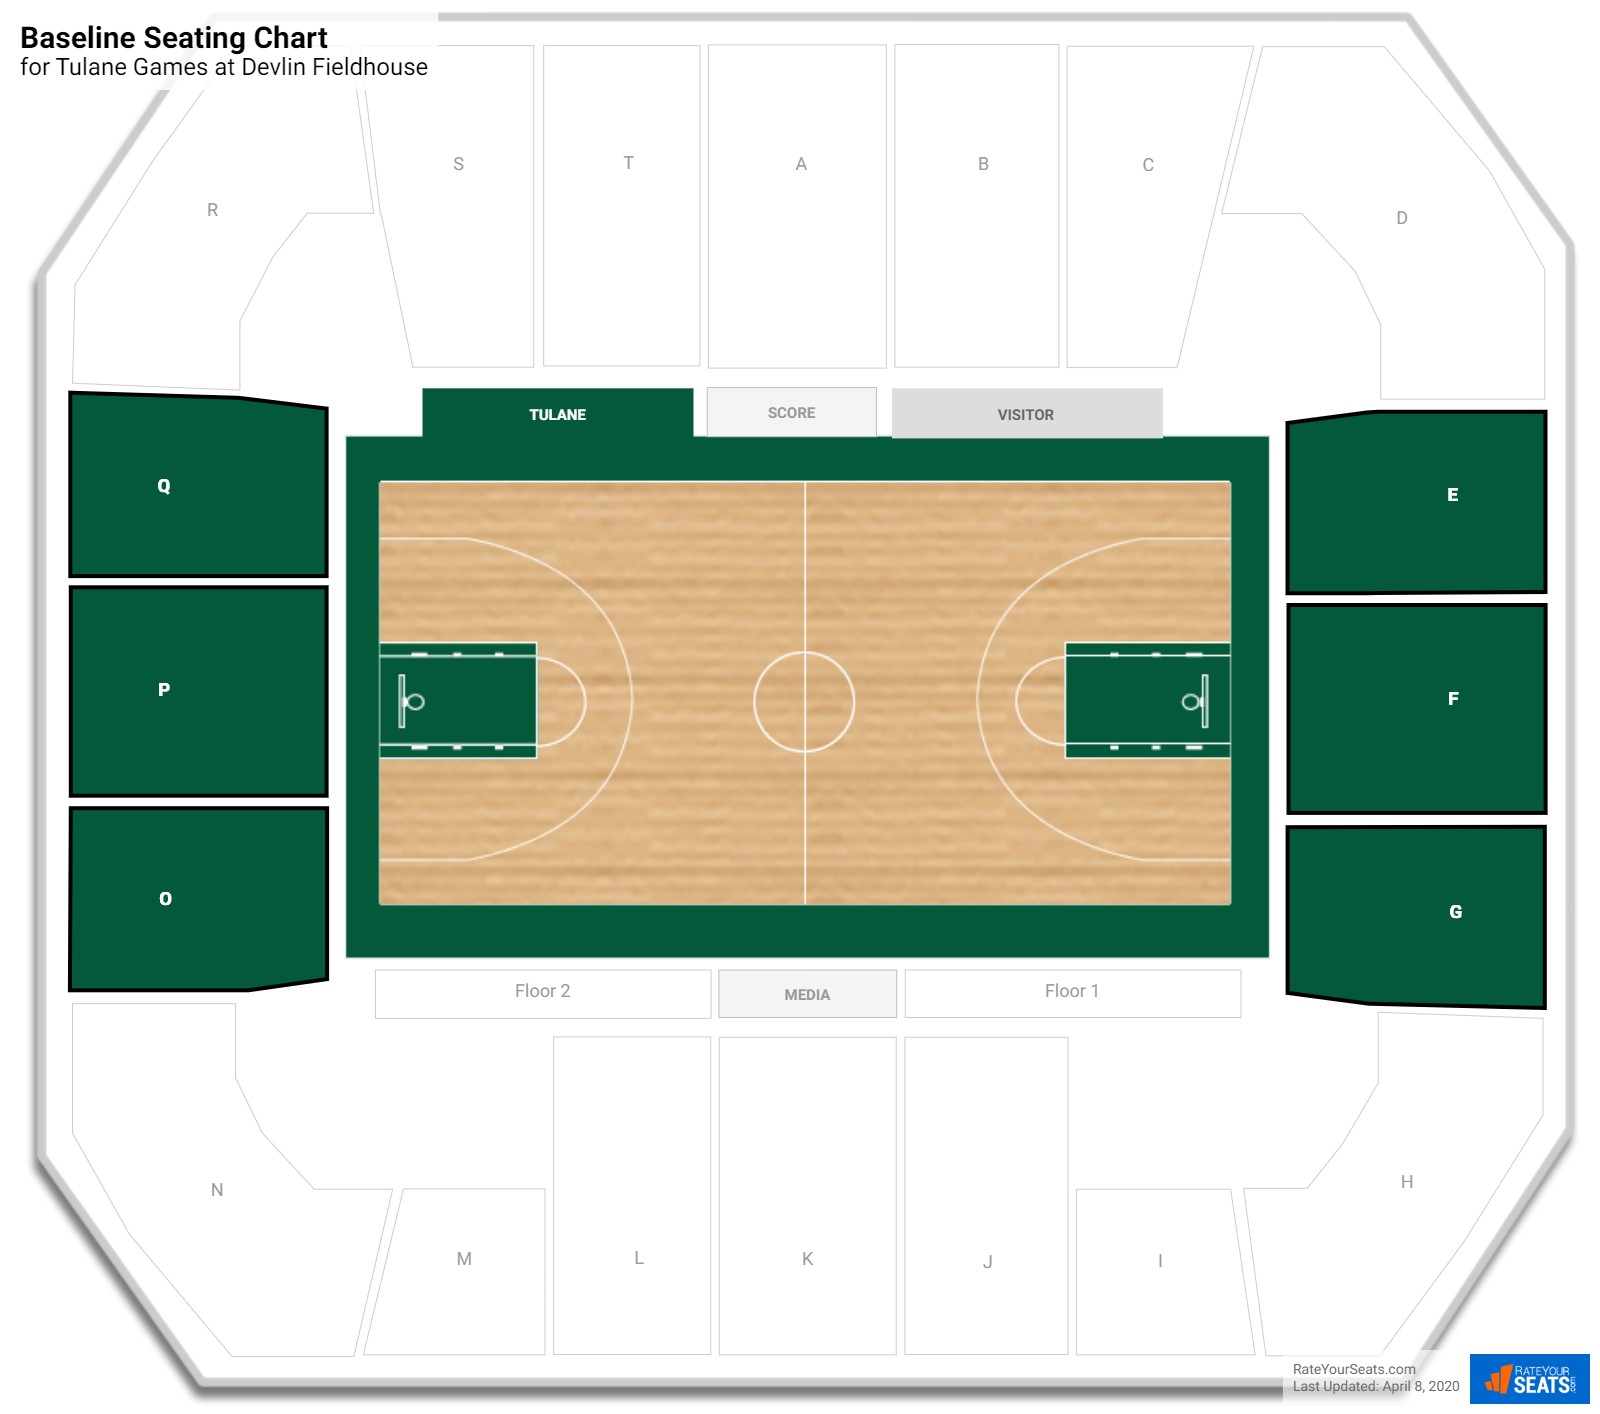 Devlin Fieldhouse Baseline seating chart